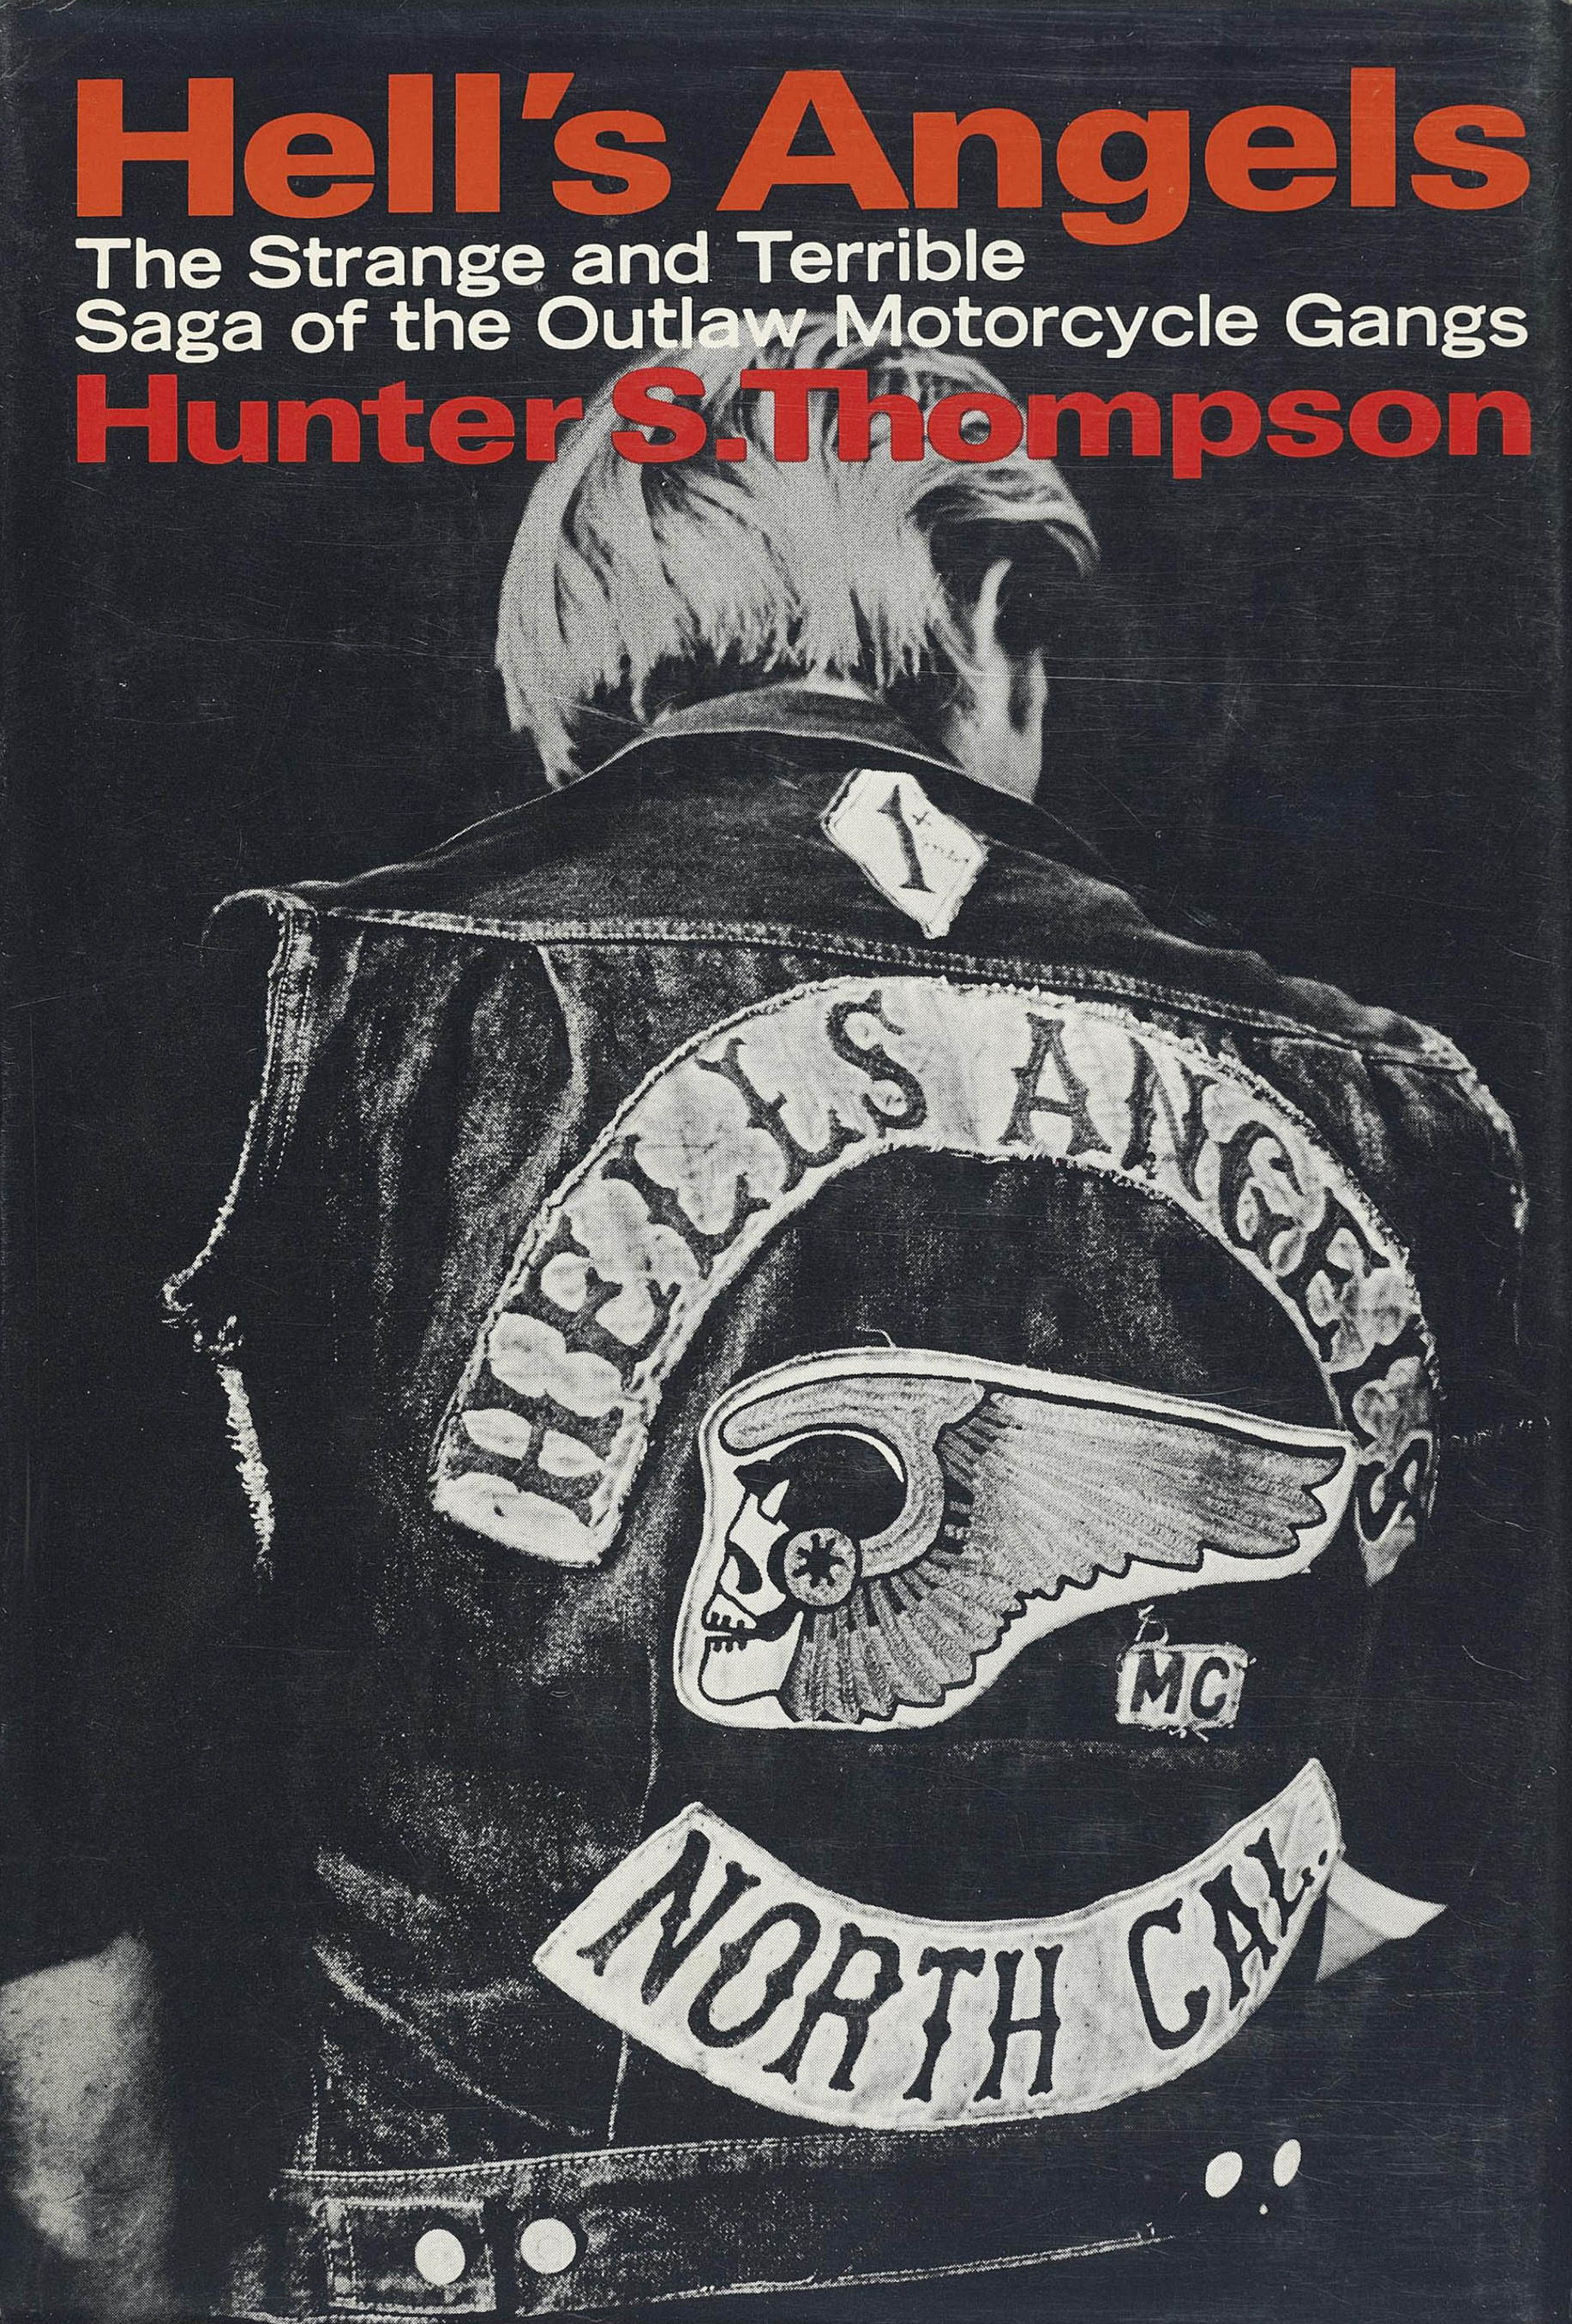 Hell's Angels: The Strange and Terrible Saga of the Outlaw Motorcycle Gangs  - Wikipedia